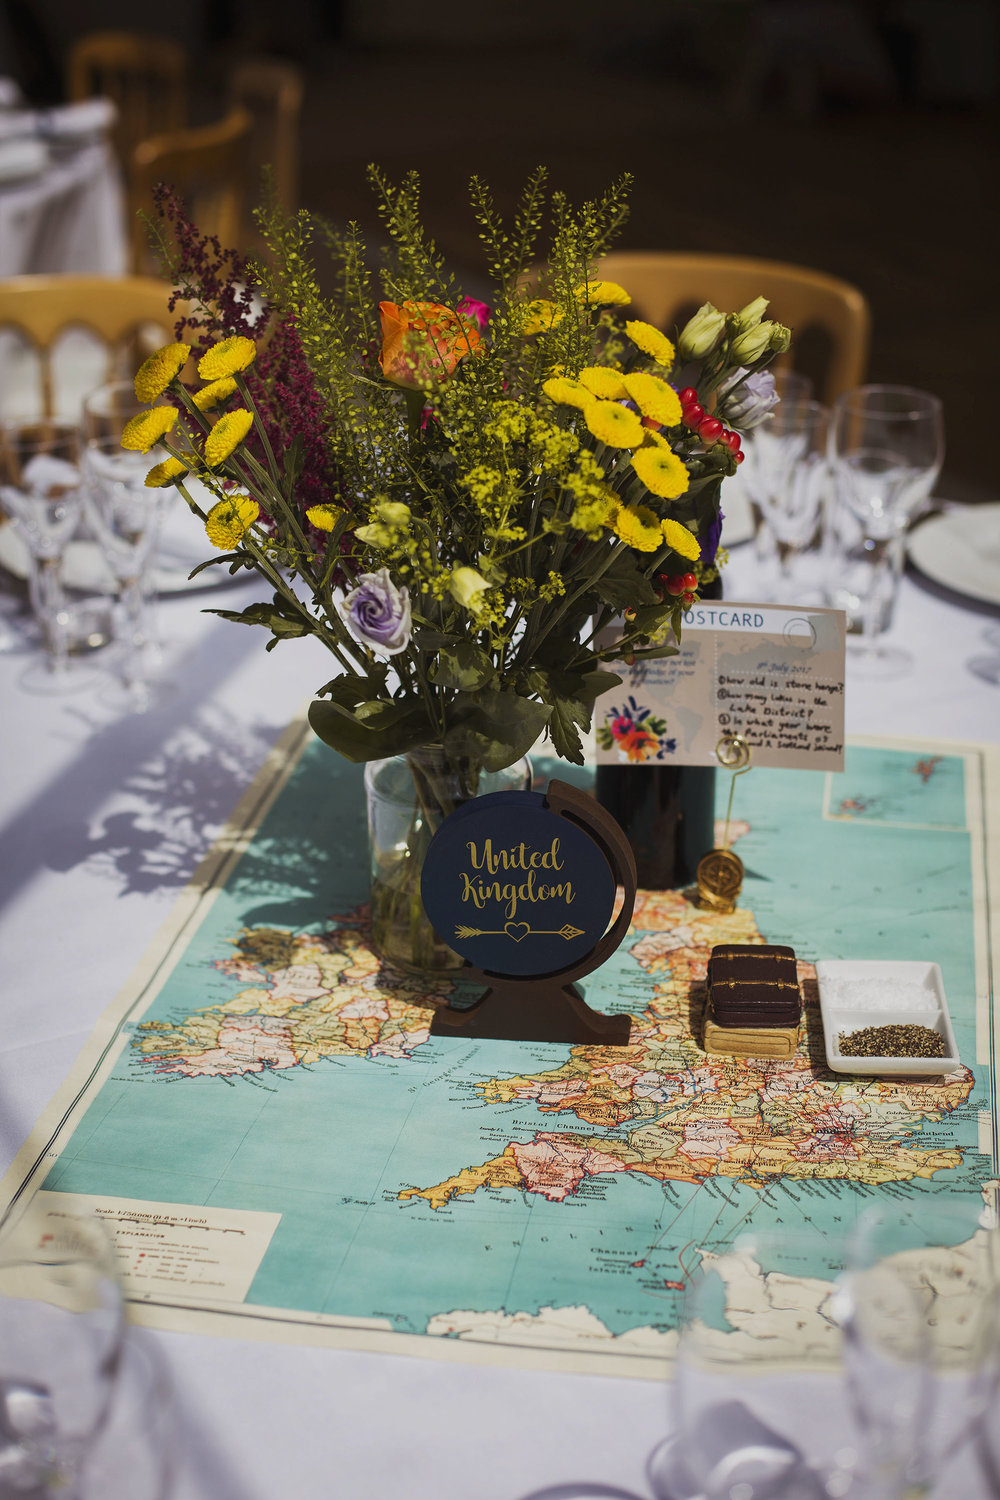 wedding flowers with table name on map of the united kingdom at wedding breakfast